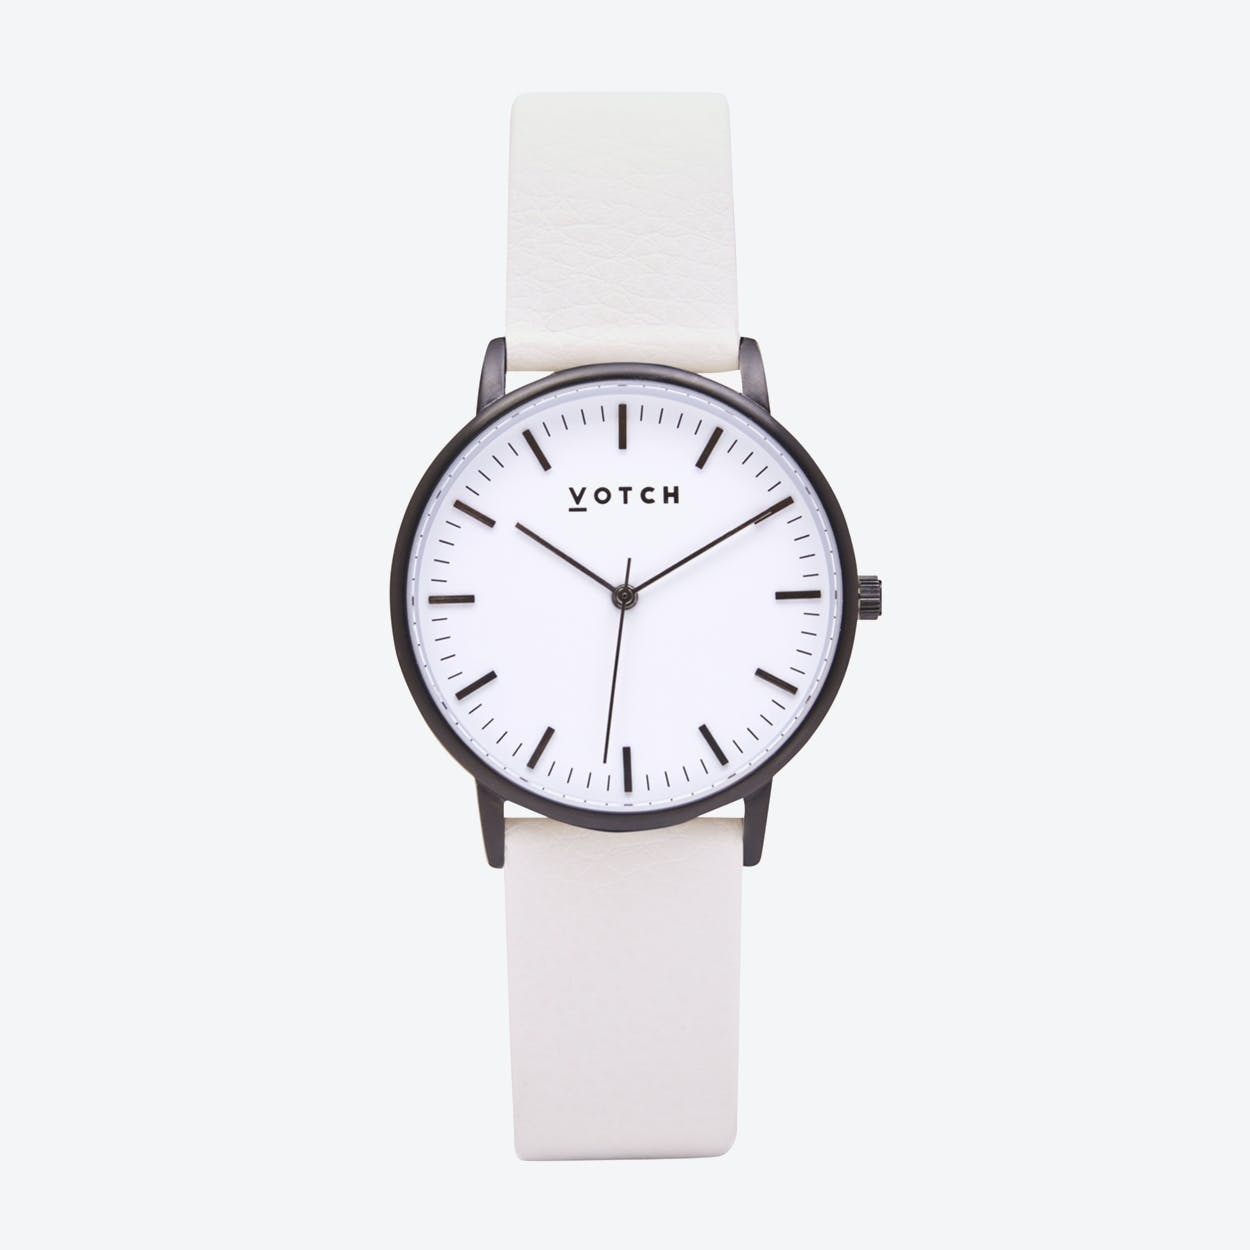 Intense Classic Watch in Black with White Face and Off-White Vegan Leather Strap, 36mm